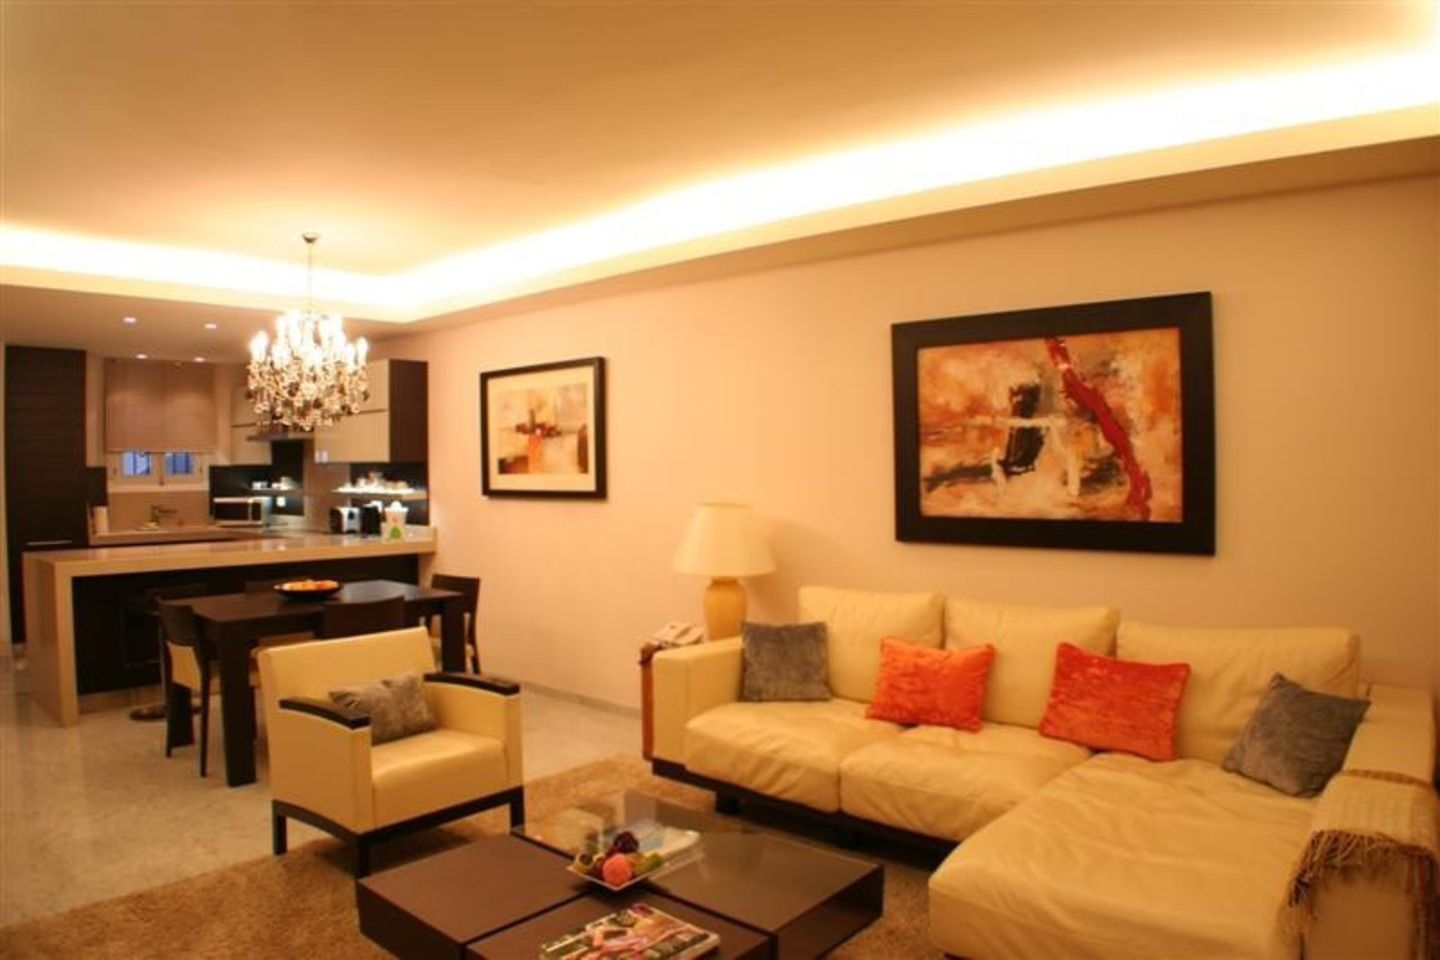 Lovely apartmnet to rent in Pase 2.